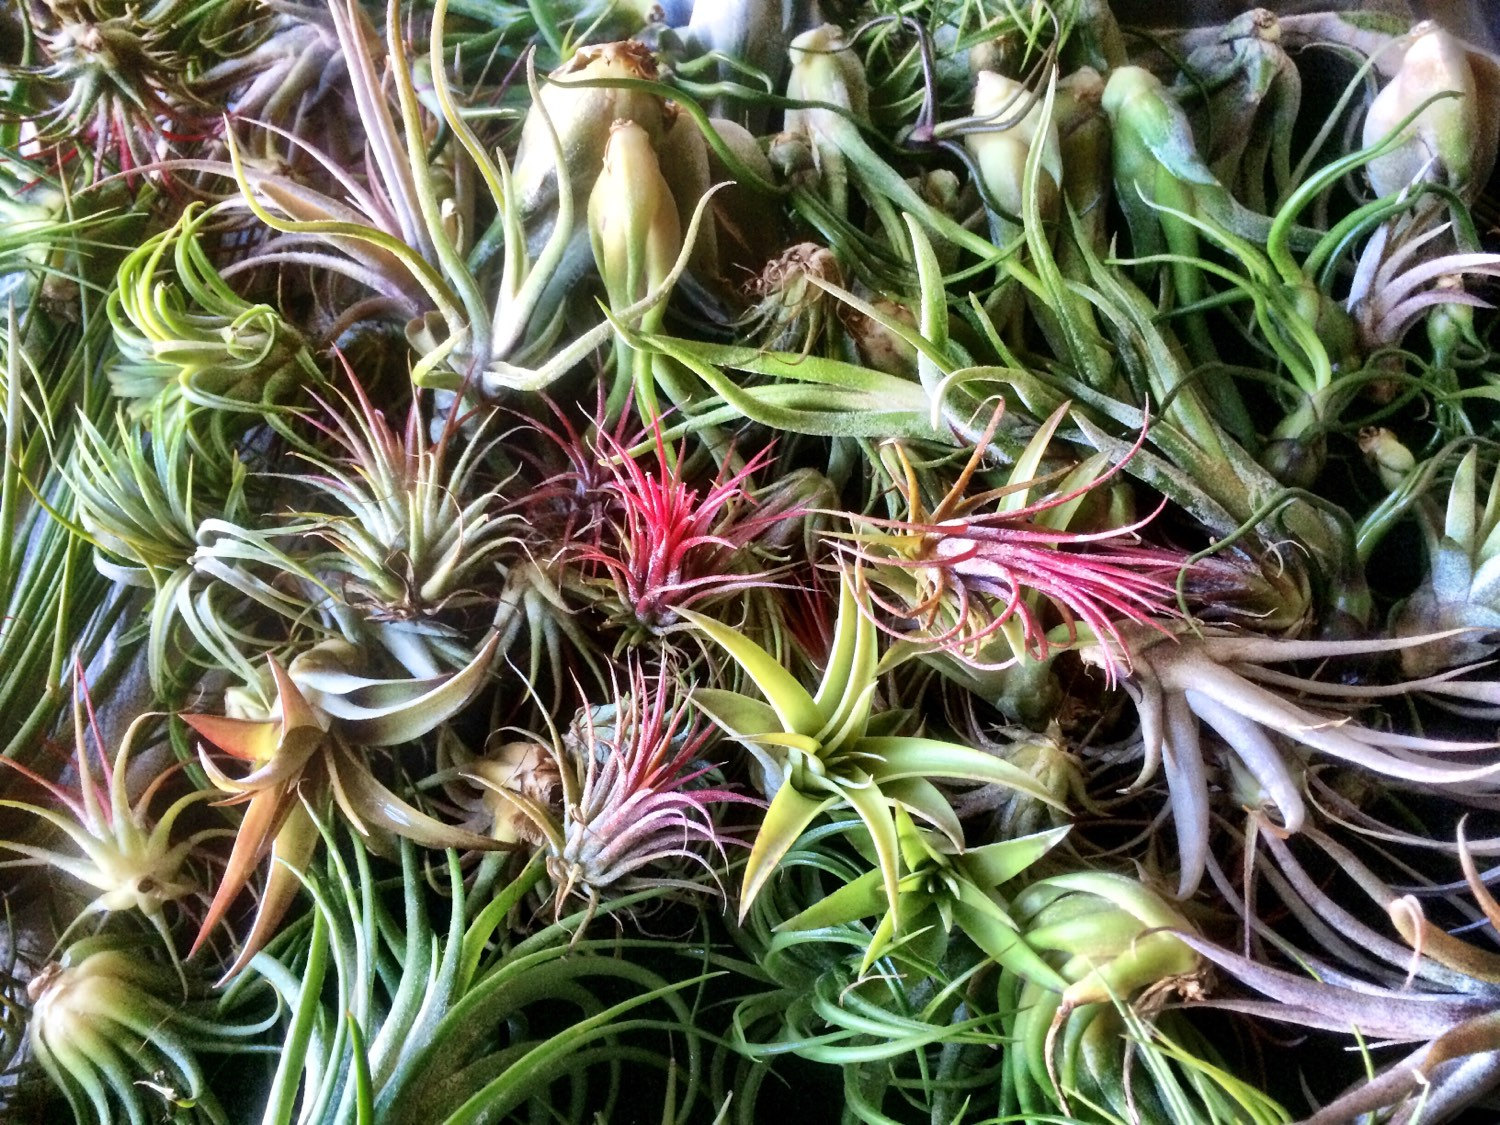 Air plants from Etsy shop Greenwich Cottage 40 Stunning Photos Featuring Varieties and Types of Air Plants